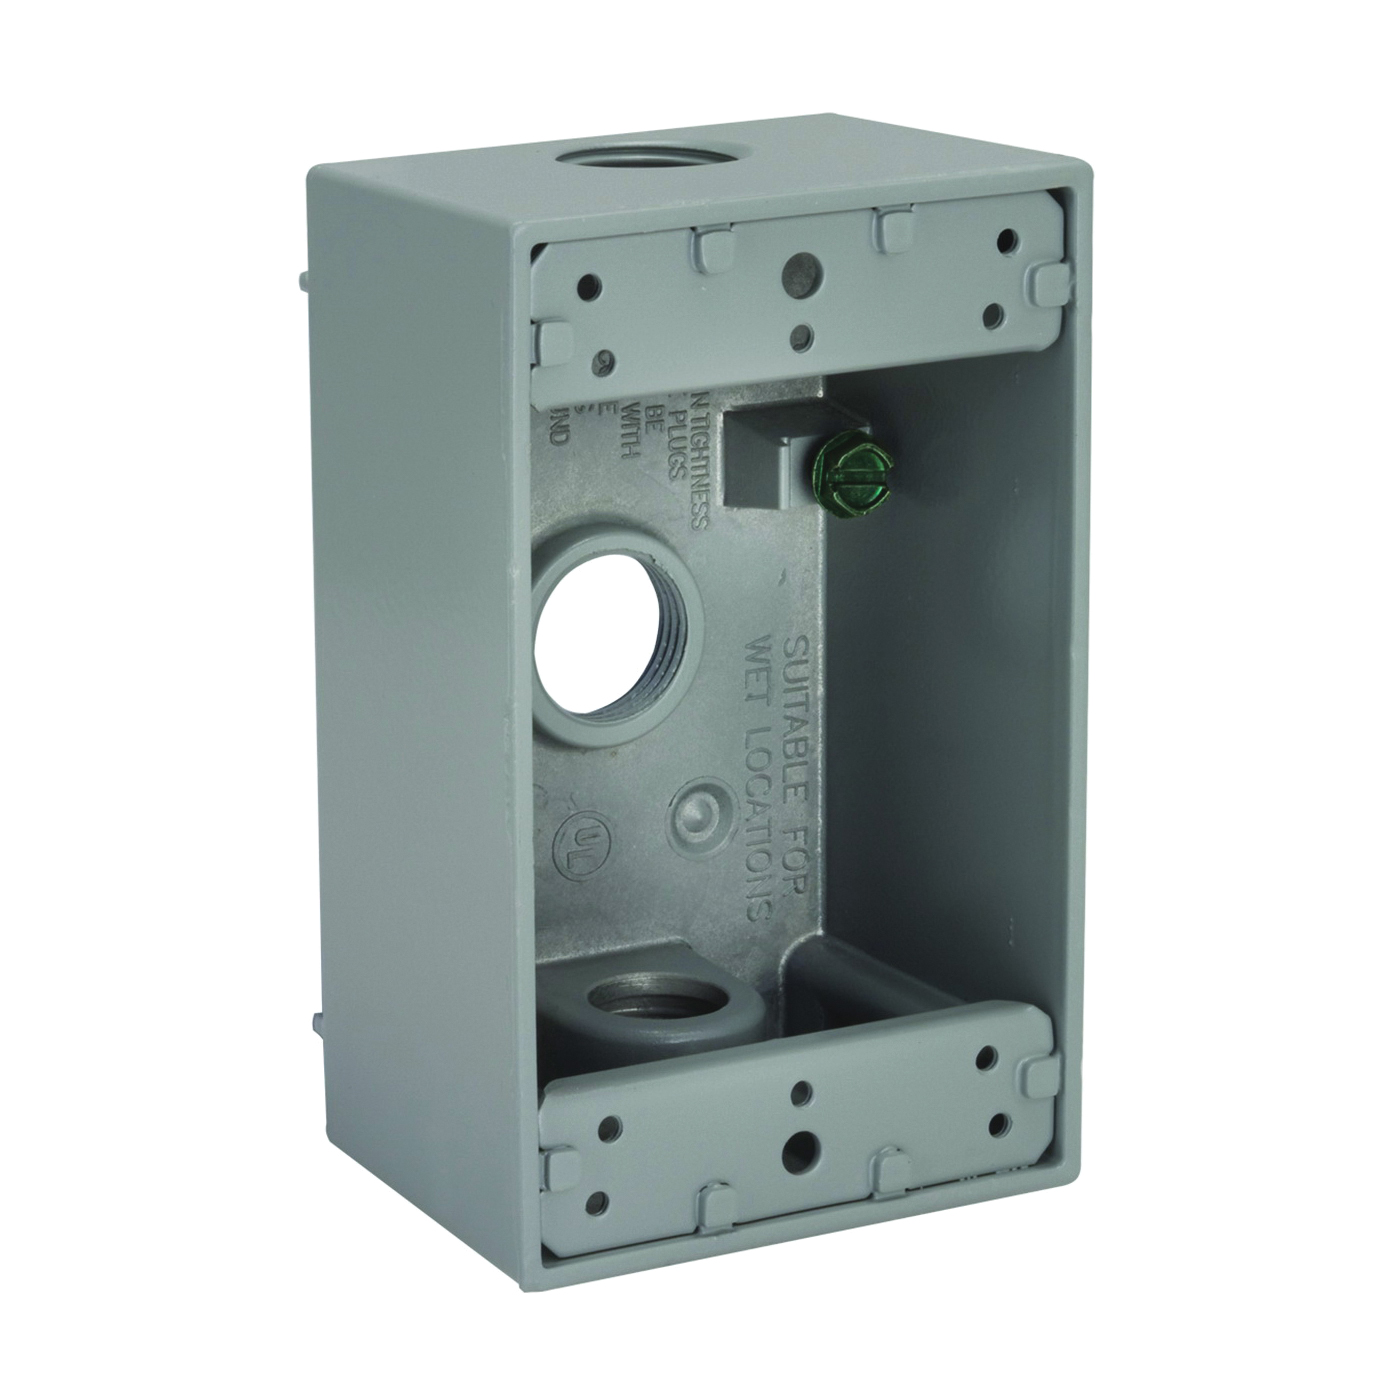 Picture of HUBBELL 5320-5 Box, 3-Outlet, 1-Gang, Aluminum, Gray, Powder-Coated